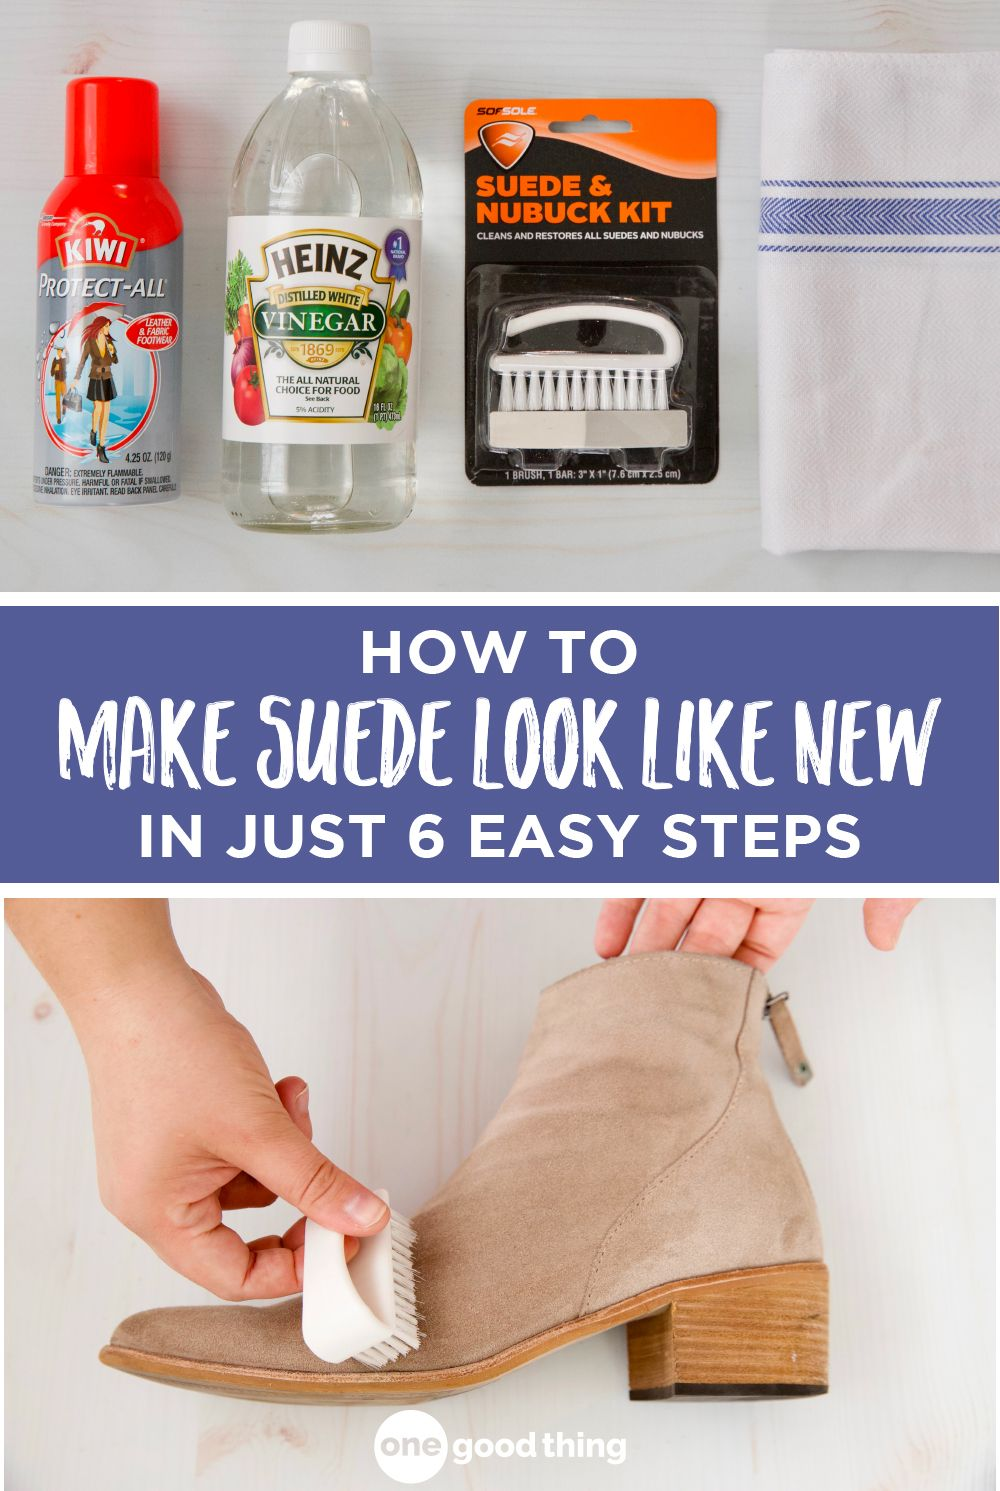 Can You Wash Suede Shoes With Soap And Water How To Clean Suede Shoes The Easy Way Clean Suede Shoes How To Clean Suede Fun To Be One